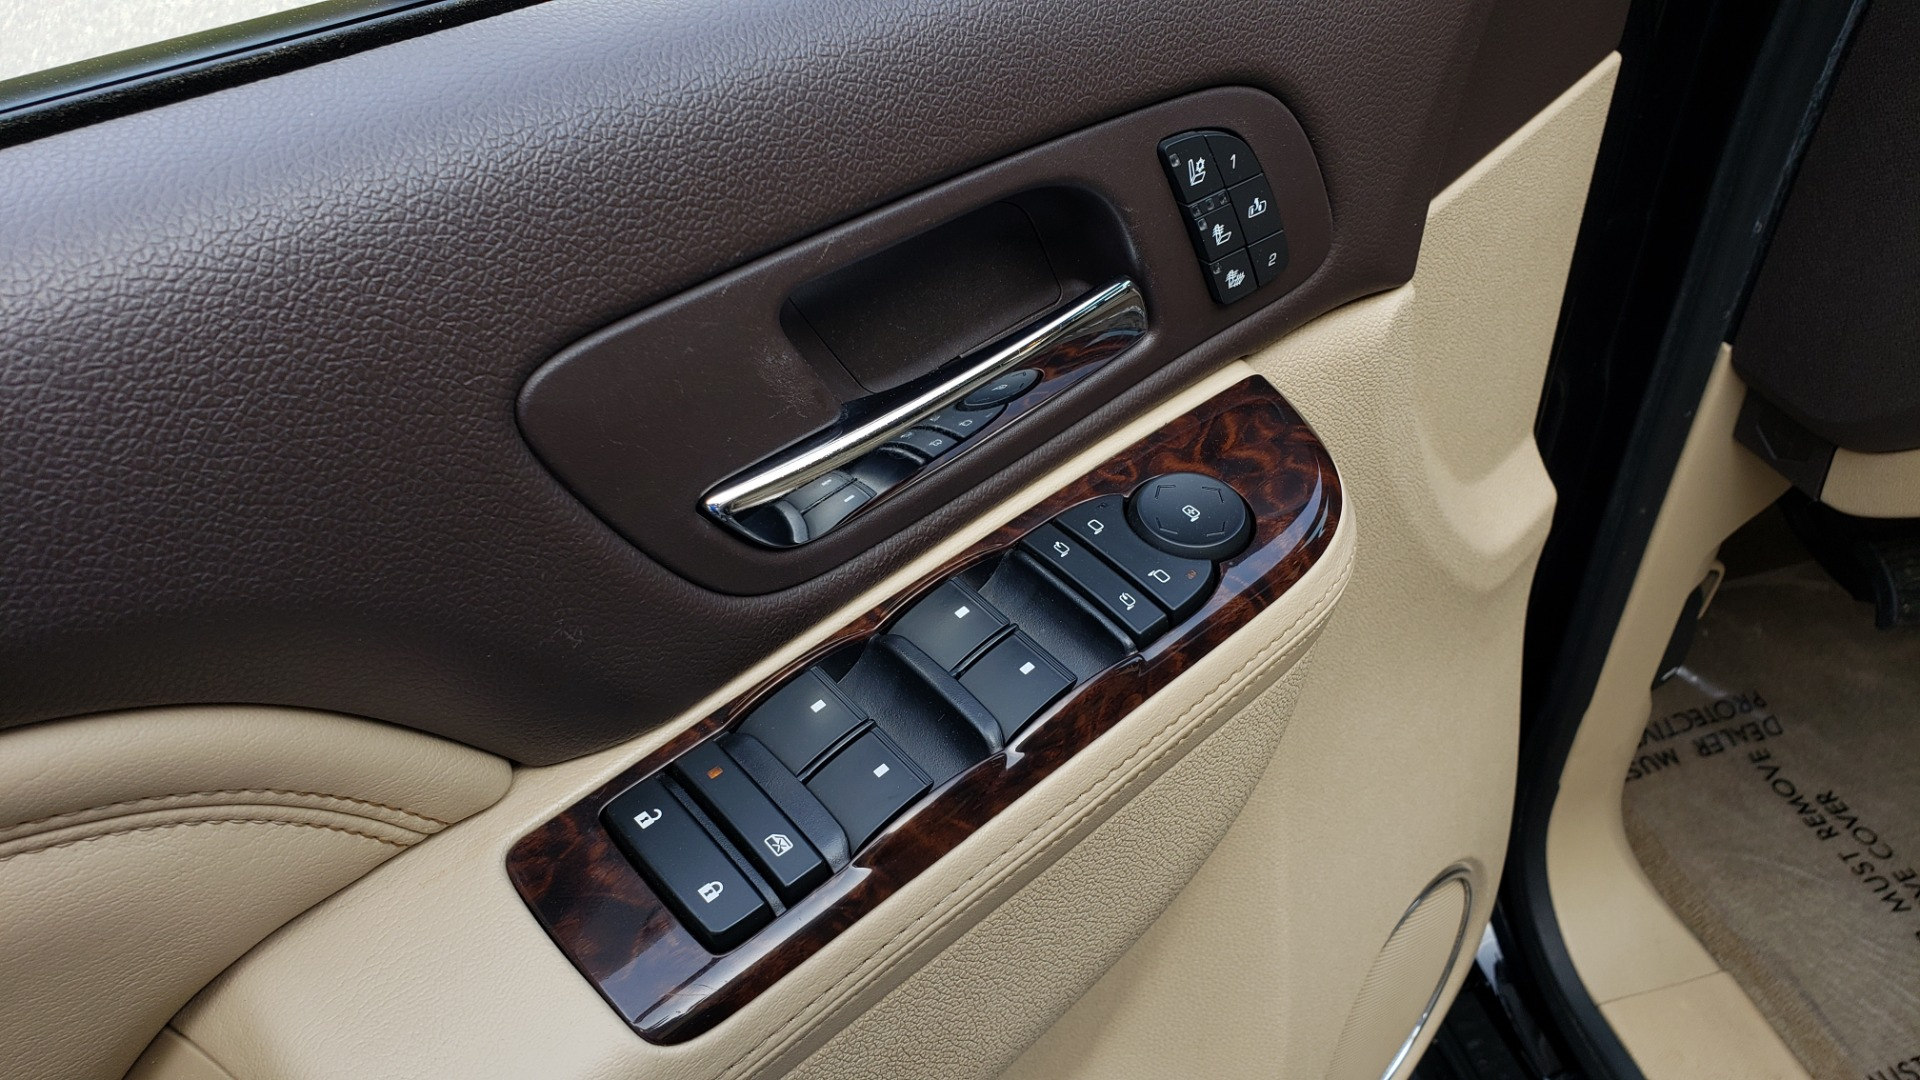 Used 2012 GMC YUKON XL DENALI AWD / NAV / SUN & ENT PKG / SUNROOF / REARVIEW / 3-ROW for sale Sold at Formula Imports in Charlotte NC 28227 31